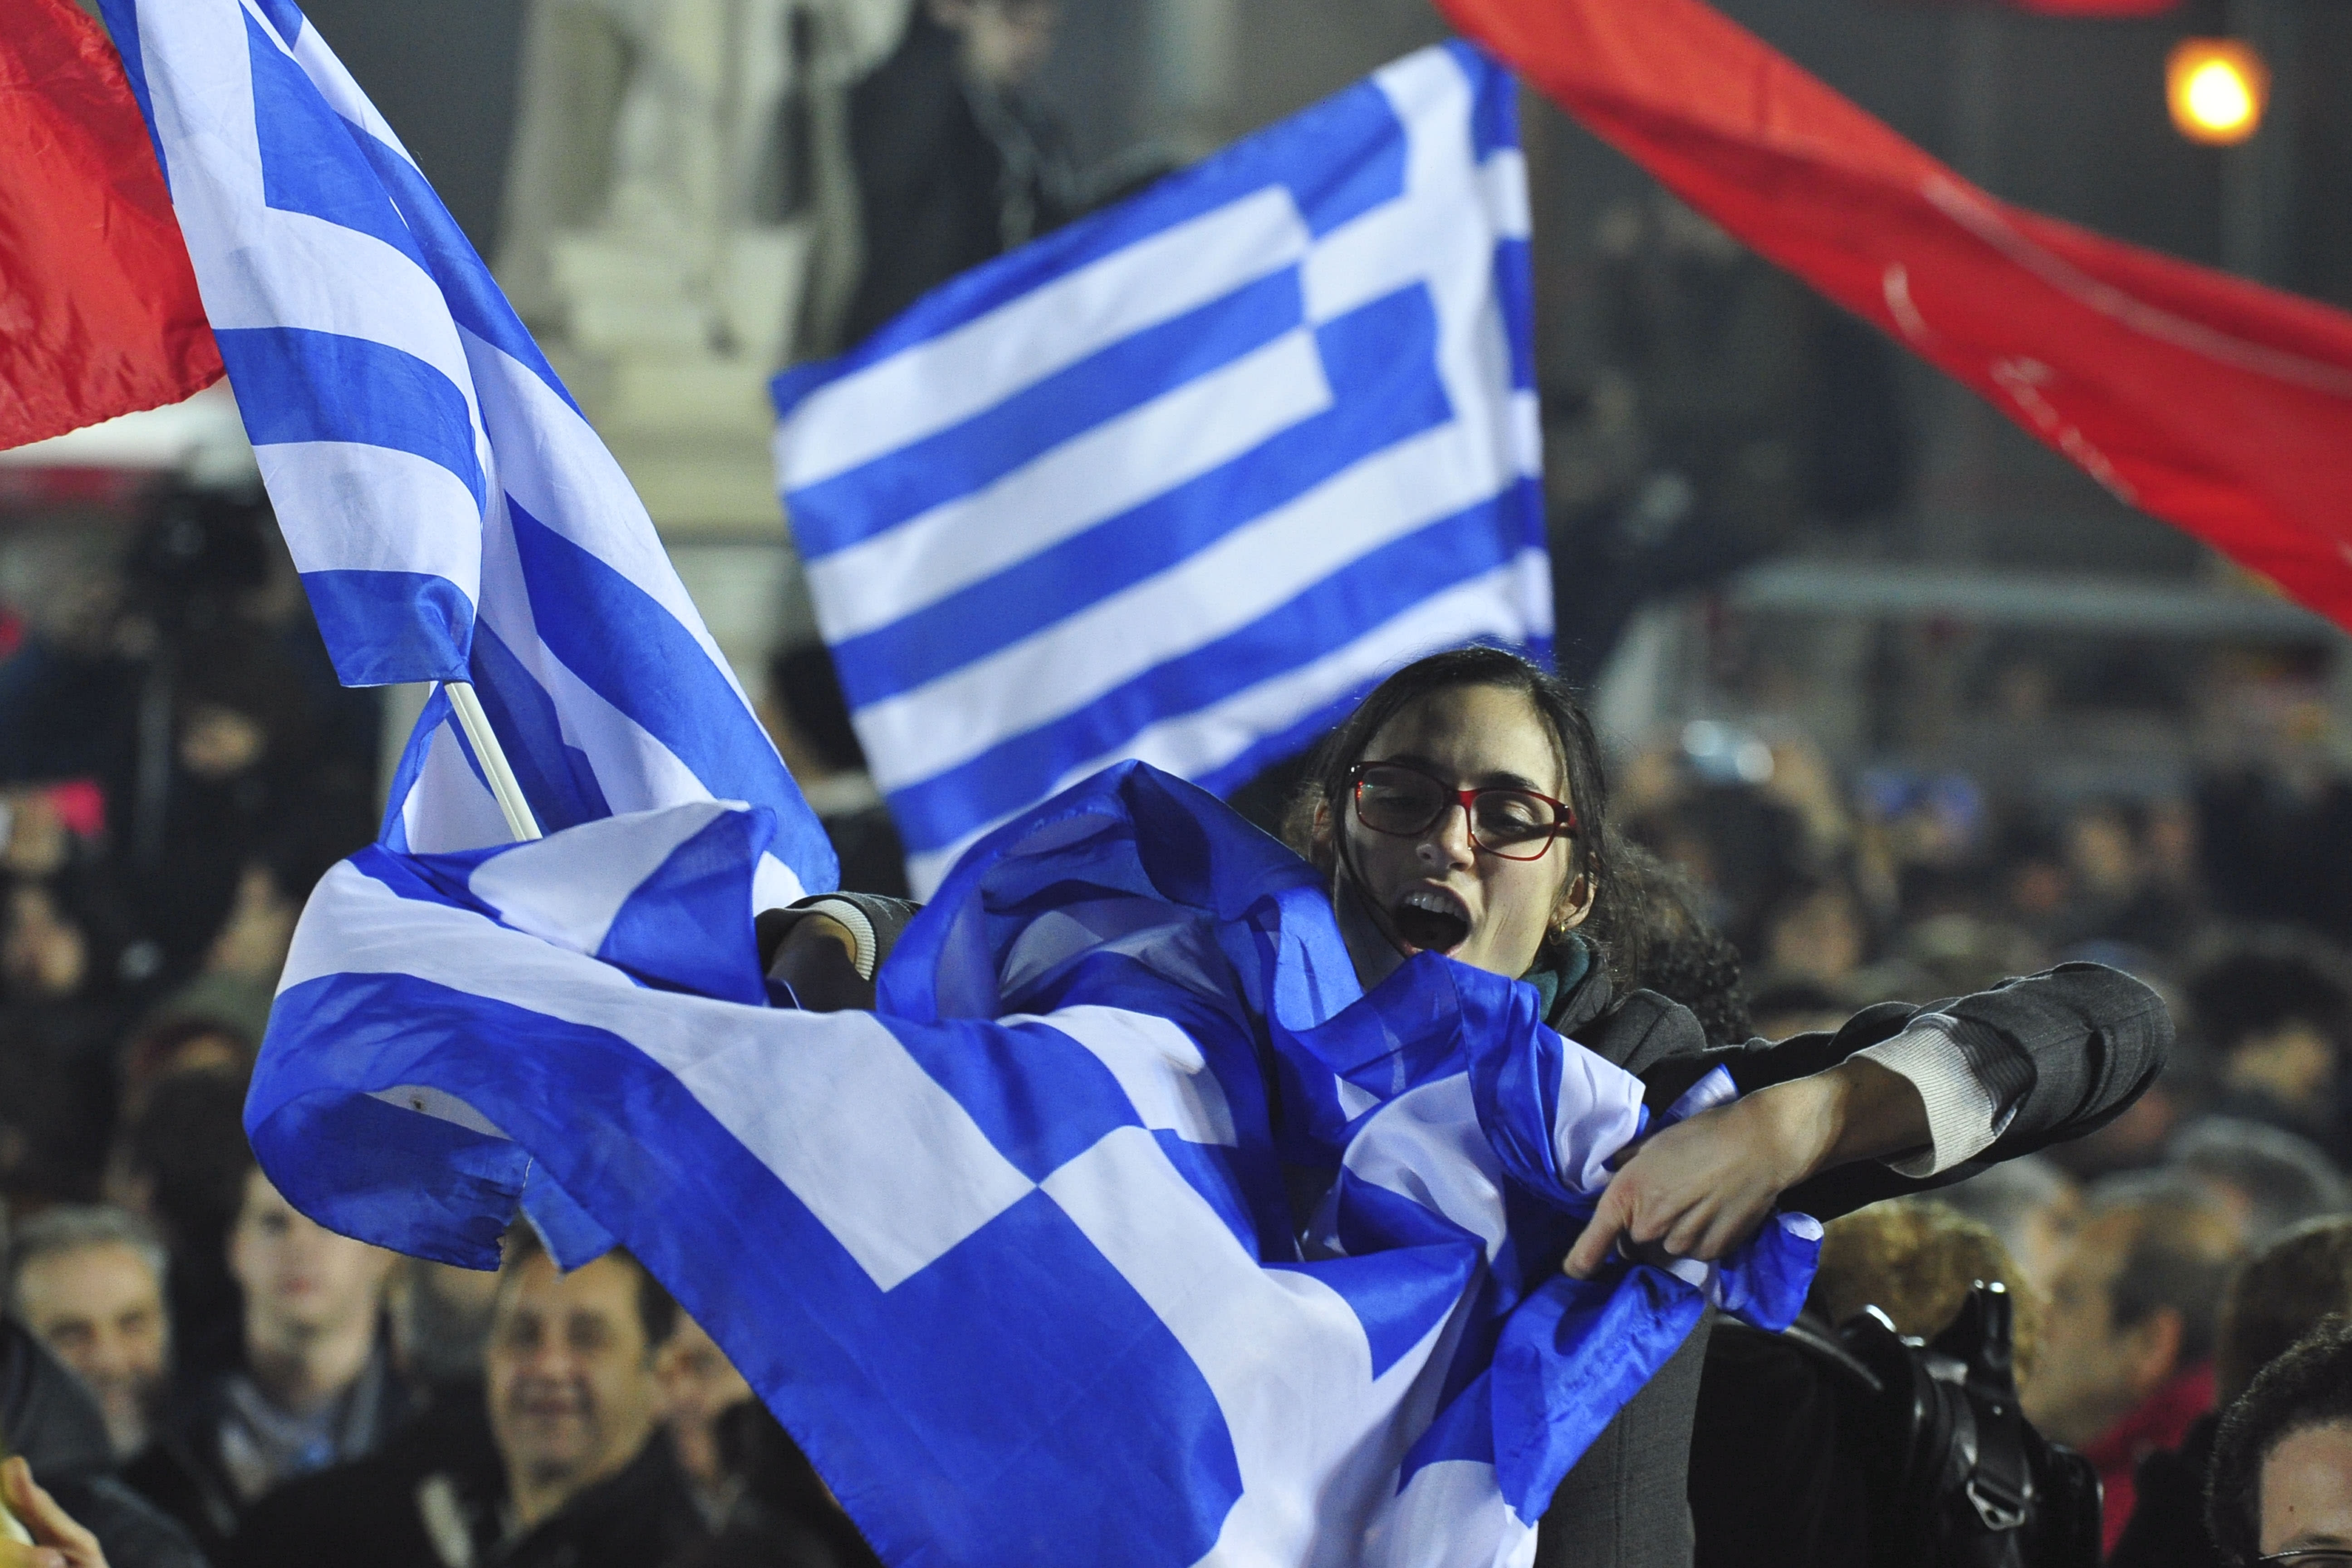 Eurozone looks for dialogue after stunning Greece elections